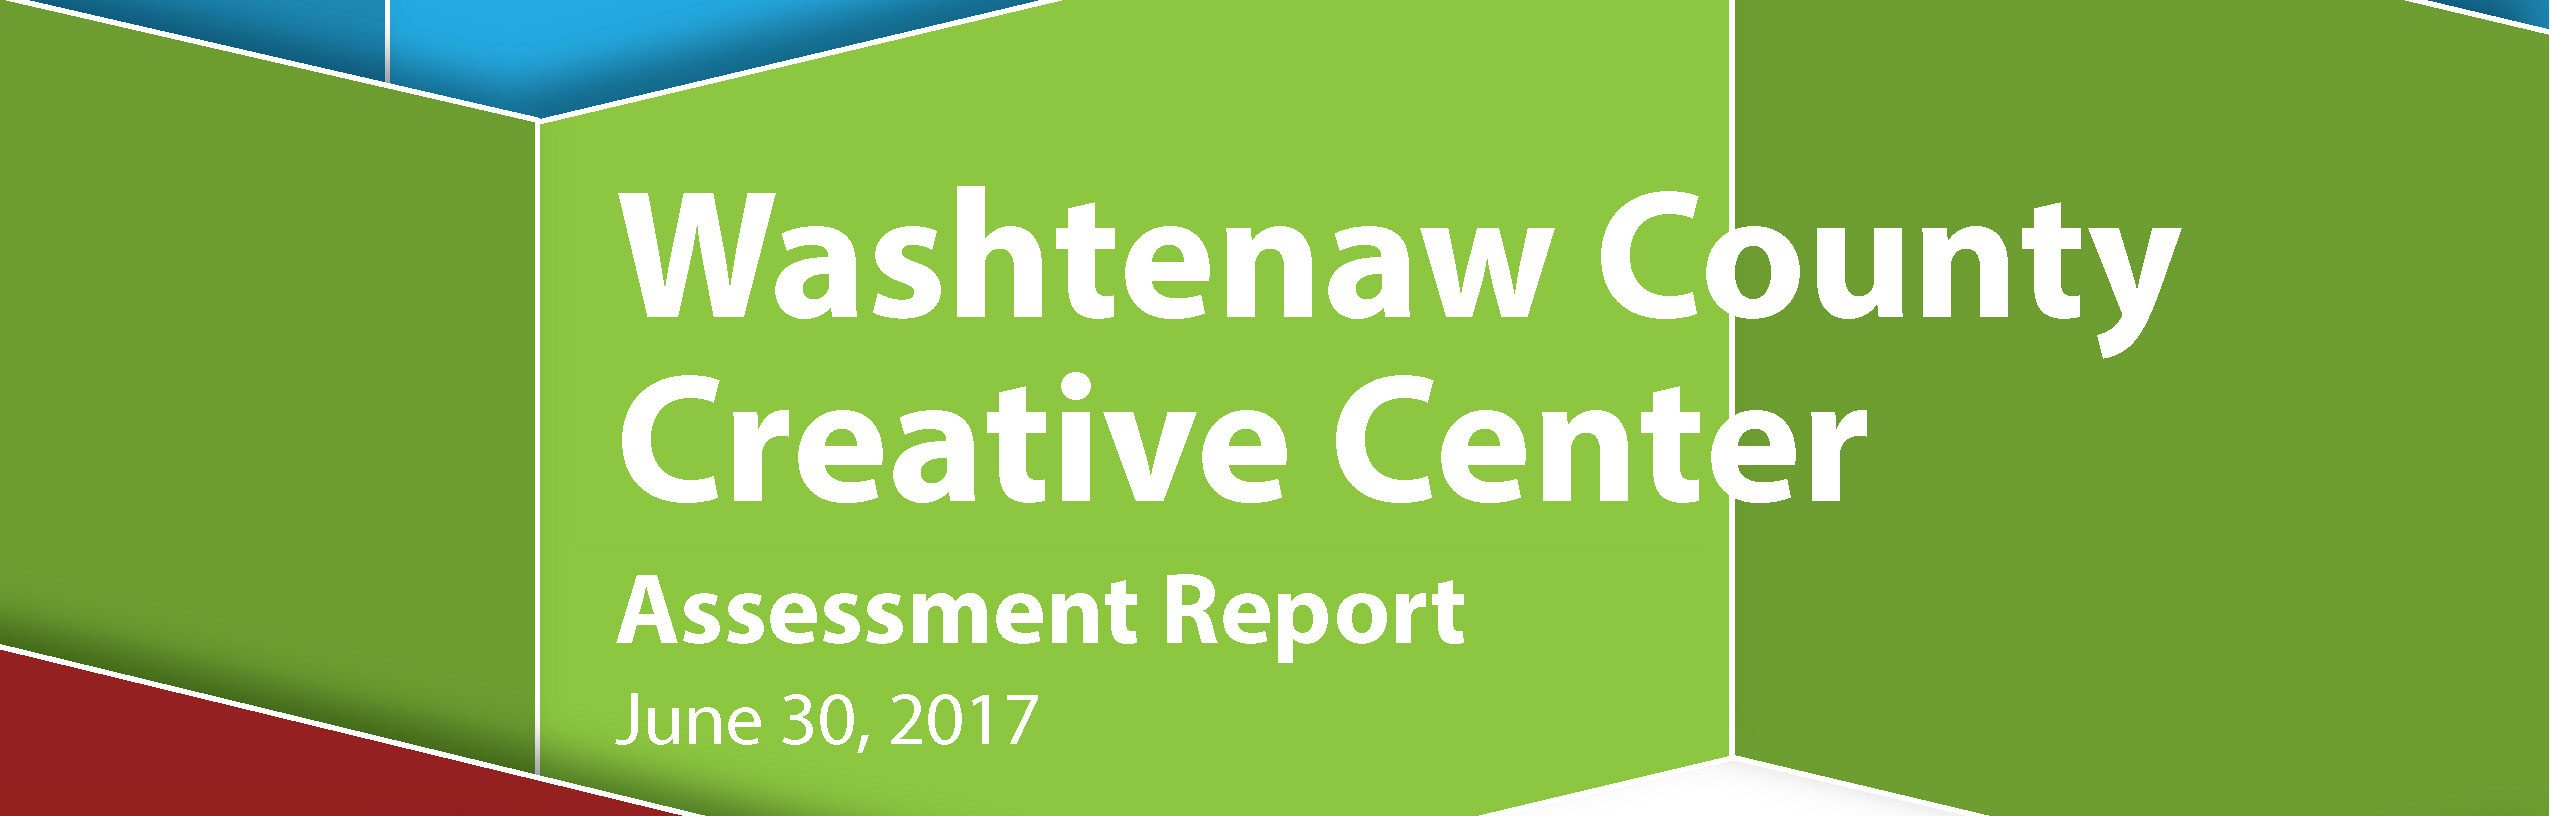 Creative Centers Assessment Report 07 23 17.Cover cropped